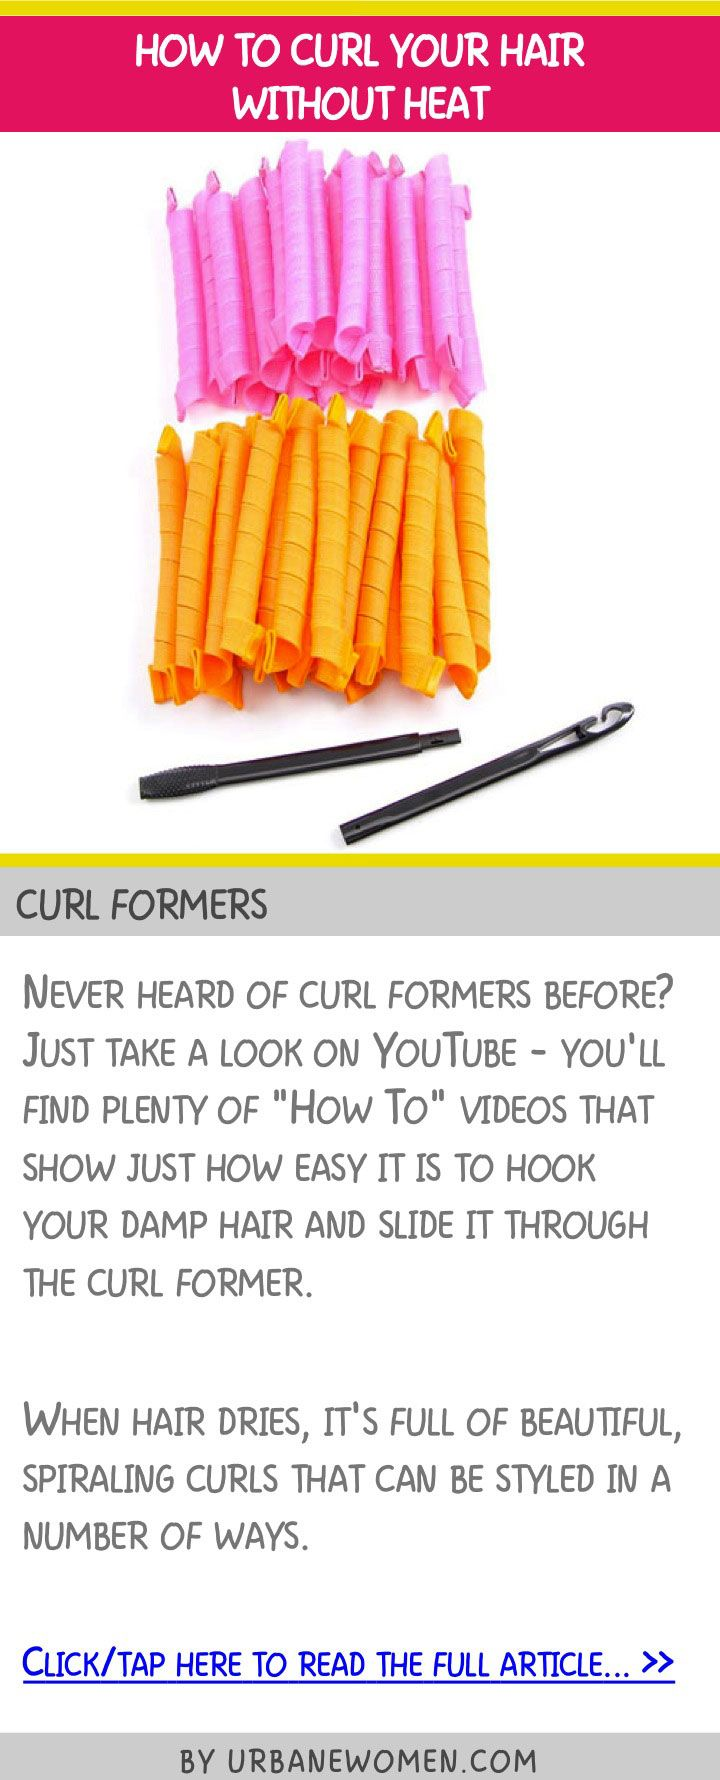 How to curl your hair without heat - Curl formers